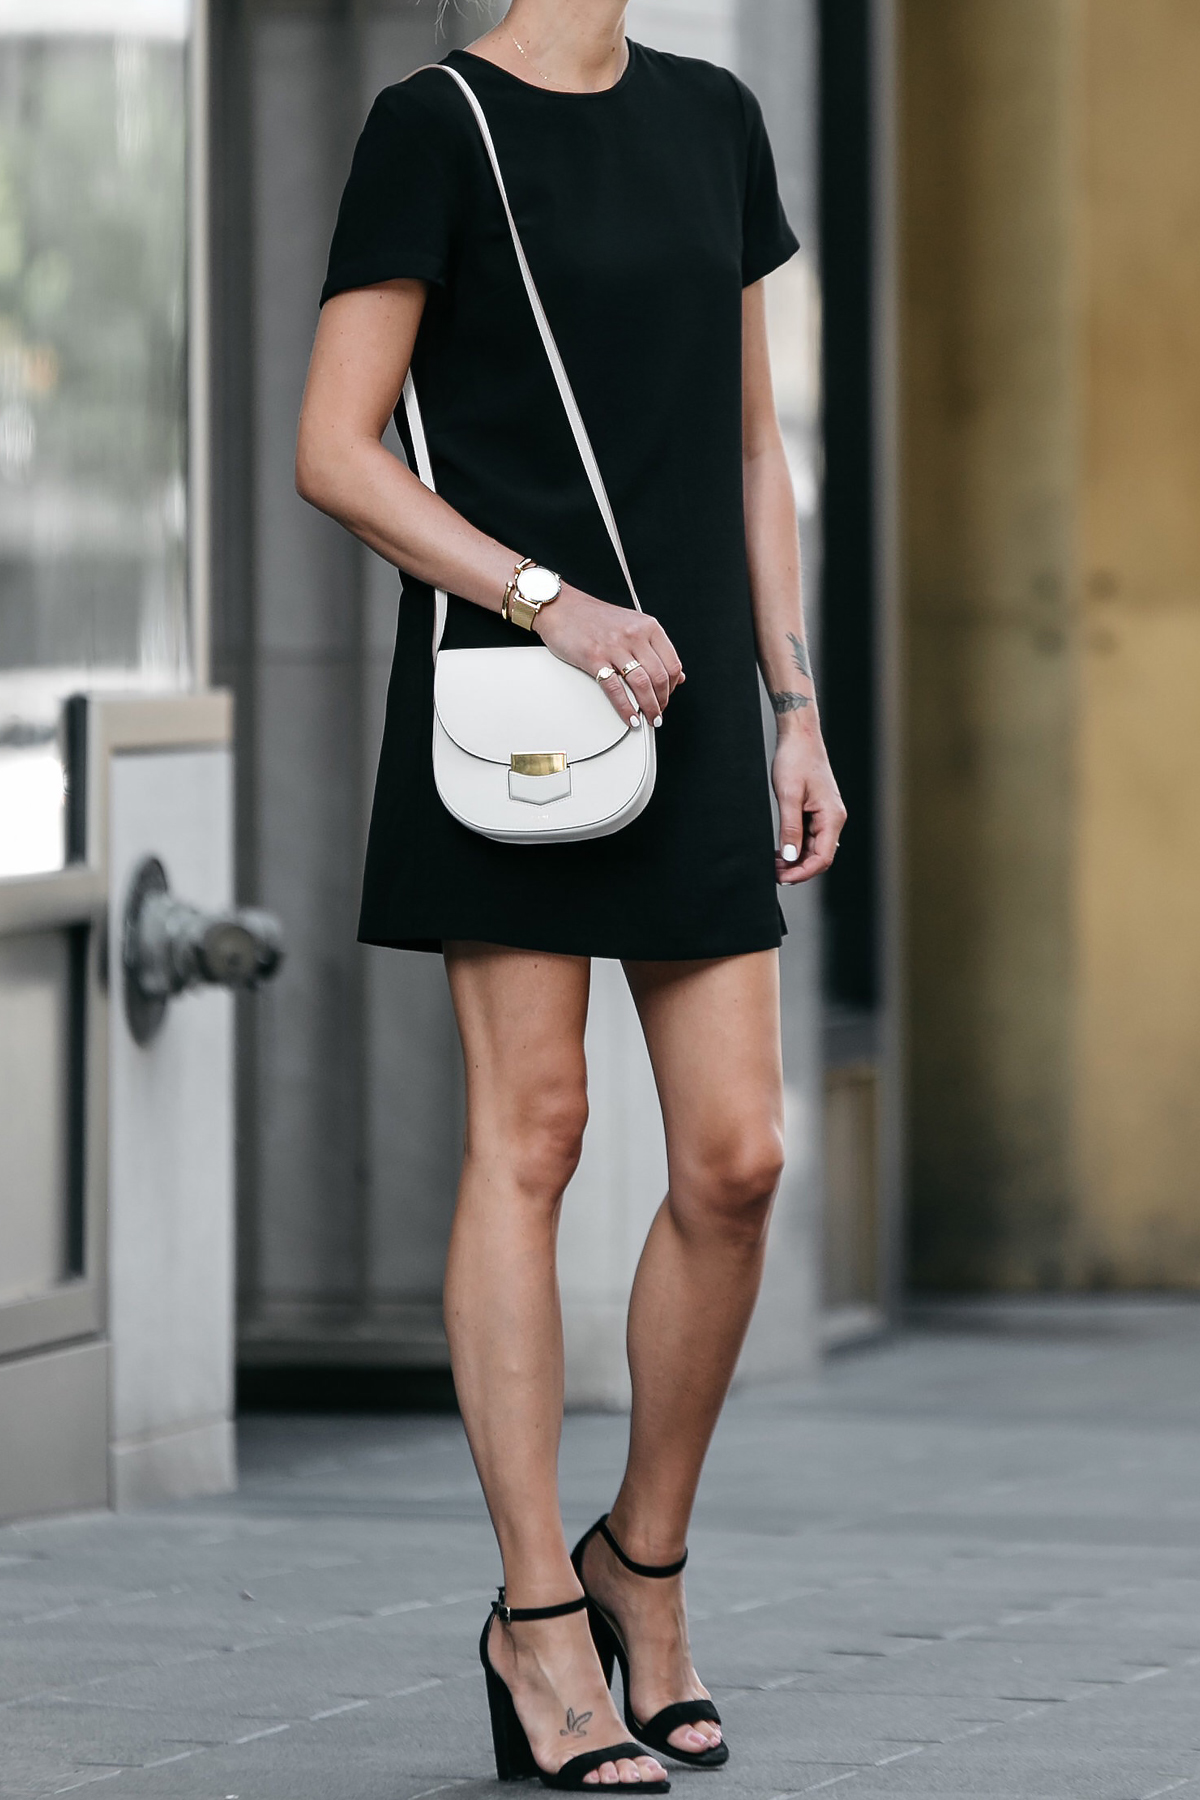 Nordstrom Black Shift Dress Outfit Black Ankle Strap Heeled Sandals Celine White Trotteur Handbag Fashion Jackson Dallas Blogger Fashion Blogger Street Style